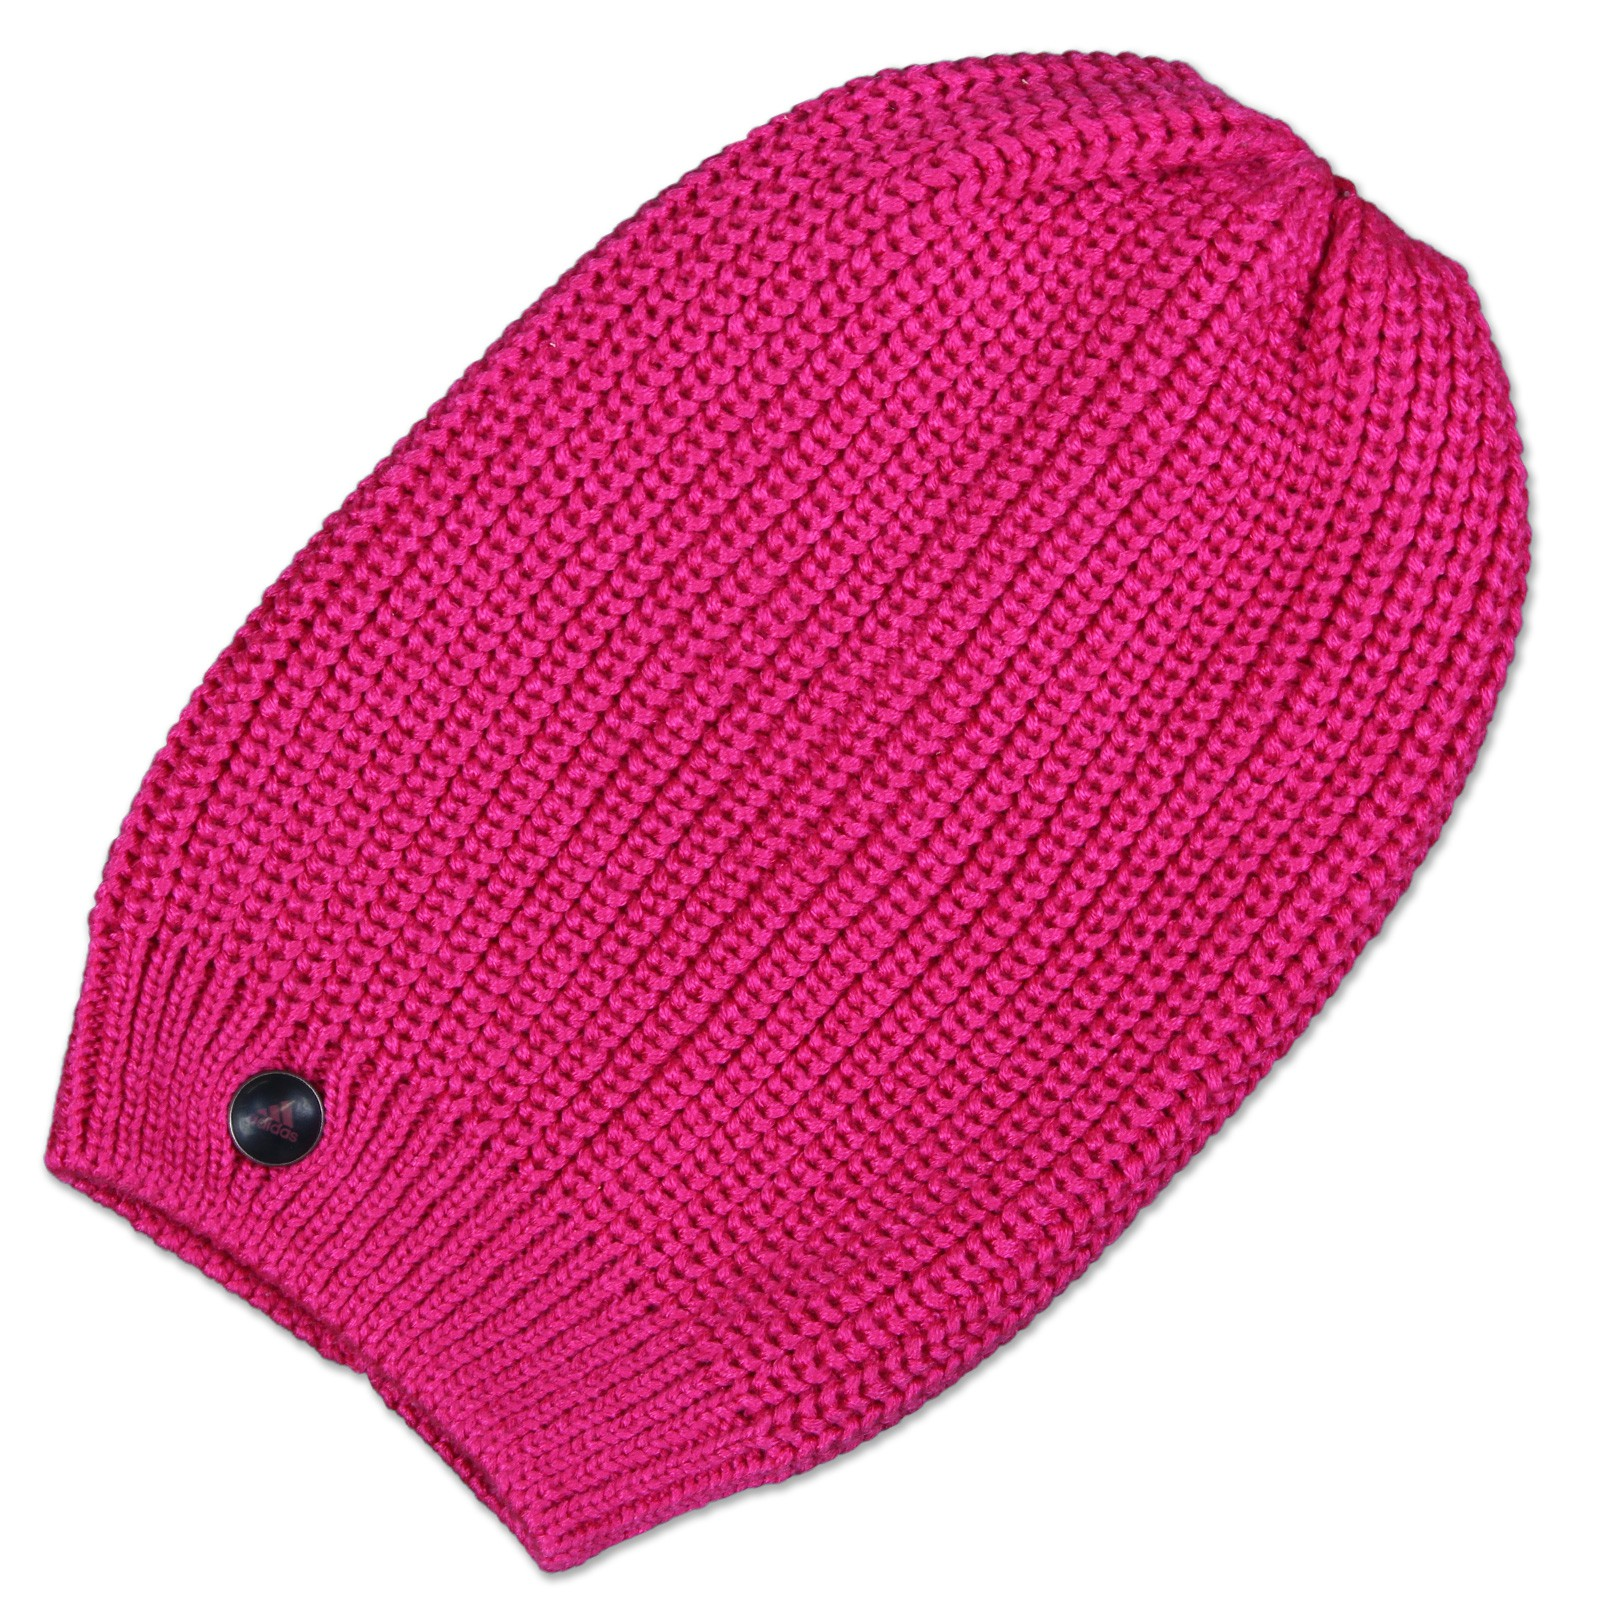 Details about Adidas Perfor  Ance Ladies Ess 3S Long Beanie Chunky Knitted  Winter Hat Pink 2c6eb0c39b